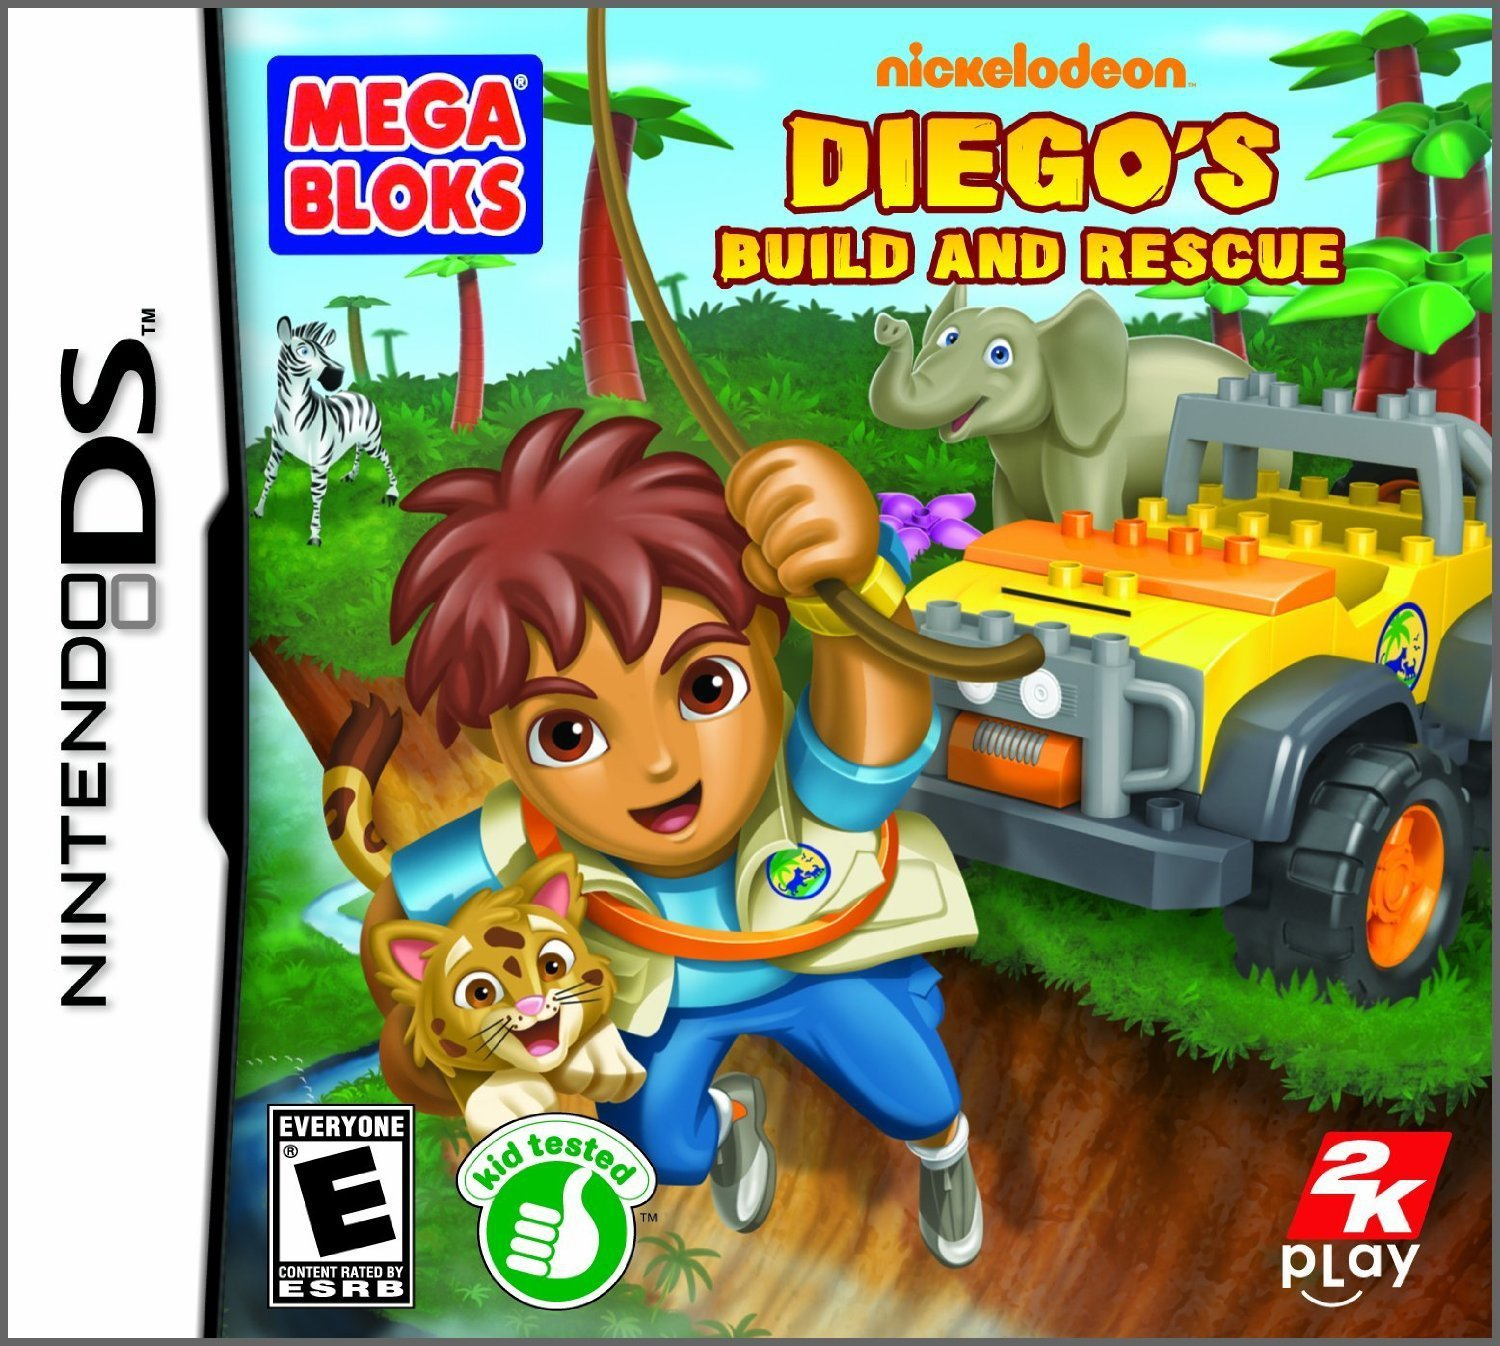 Diegos Build and Rescue